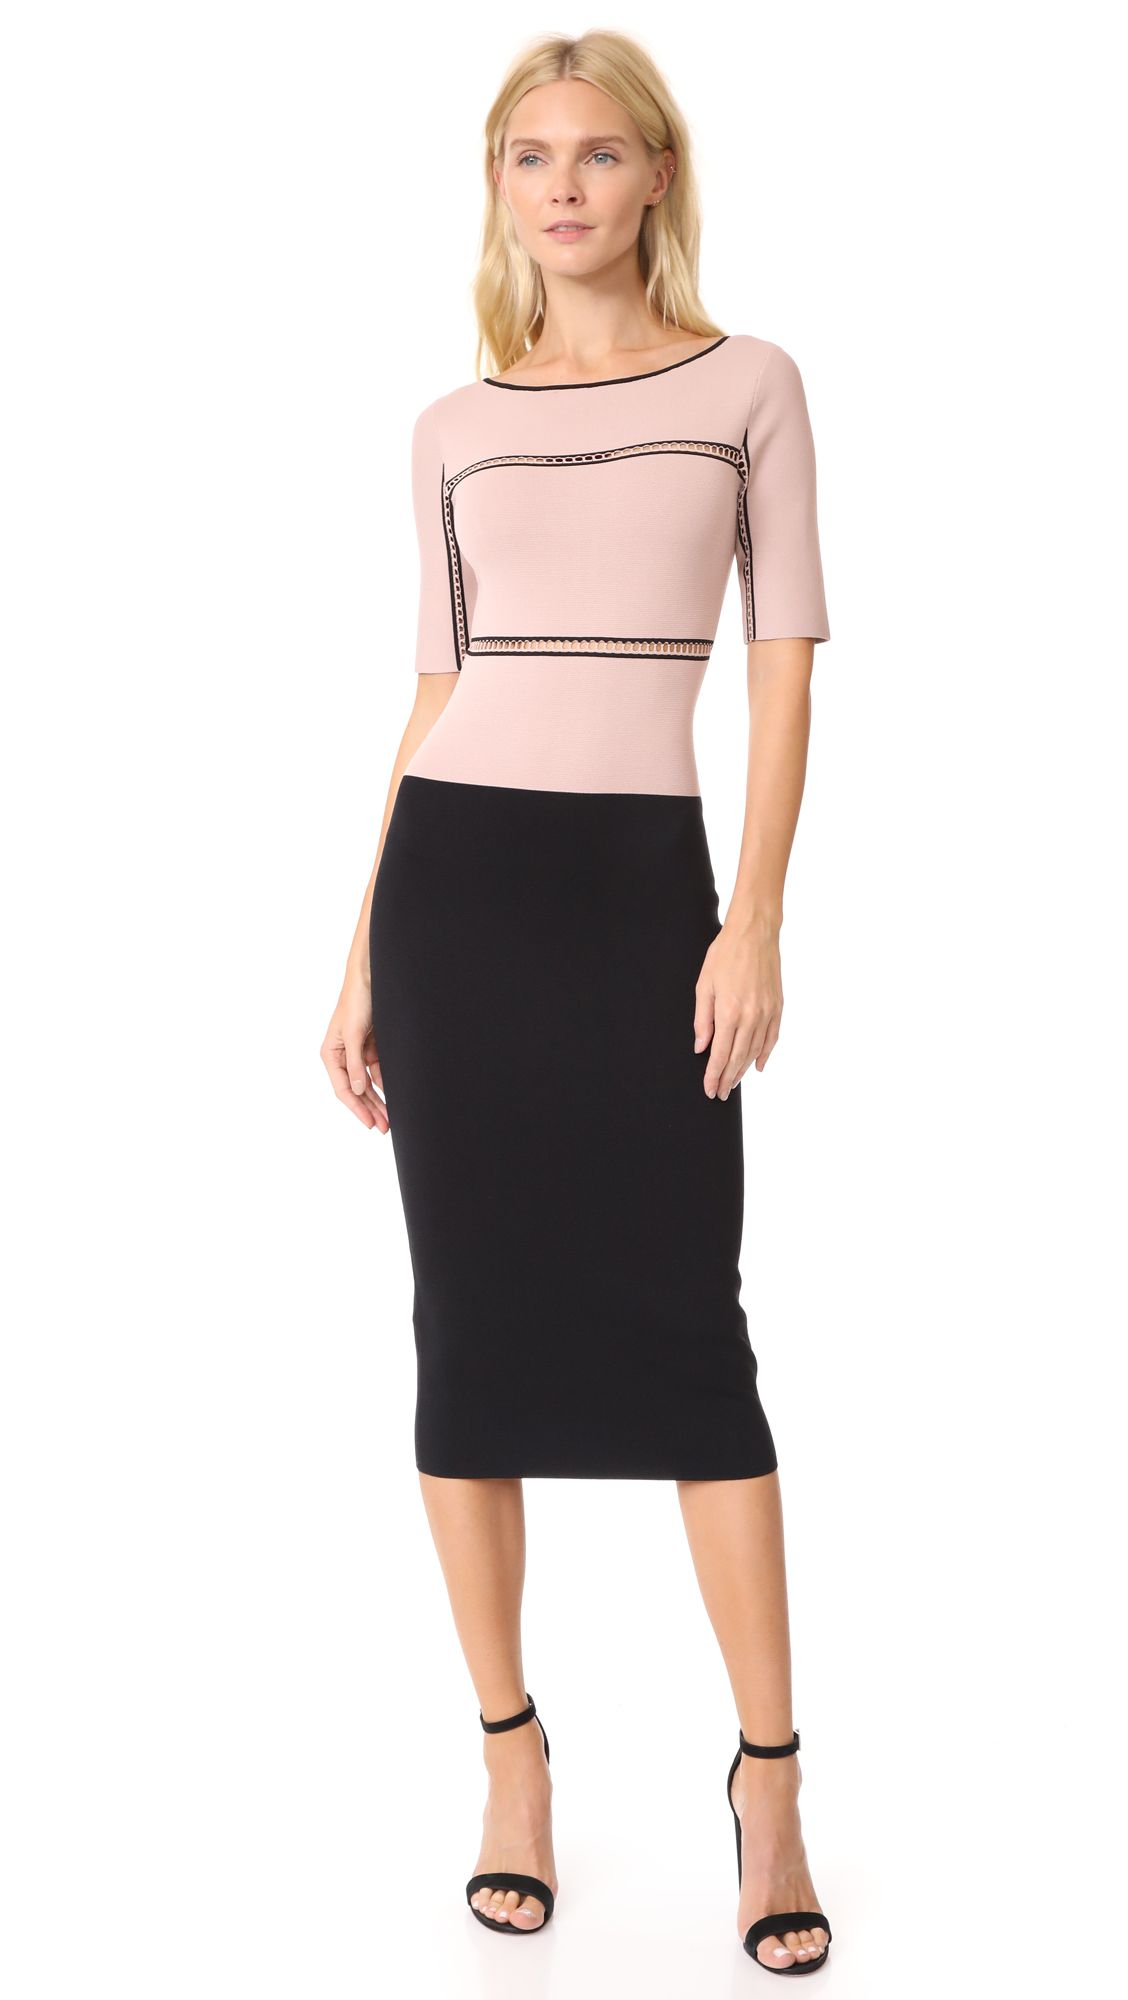 A pink and black stretch dress